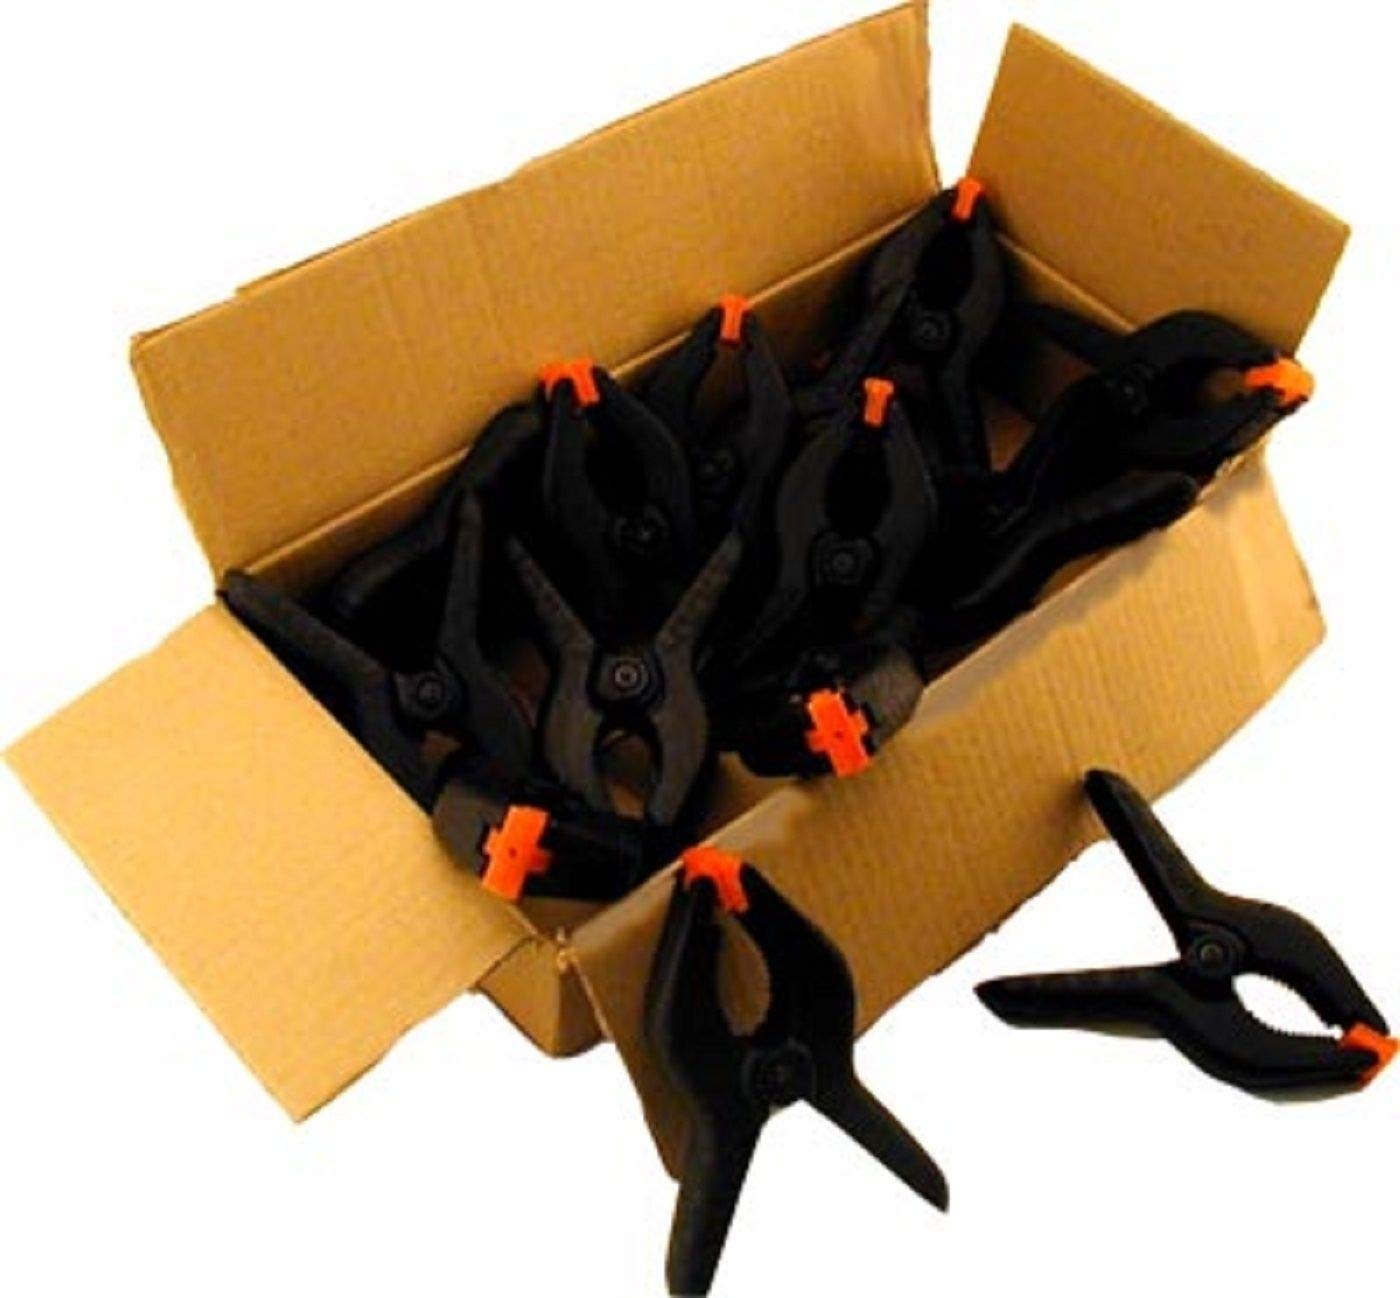 Black Nylon Grip Clips Clay Roberts Spring Clamps Pack of 8 Textured Handles